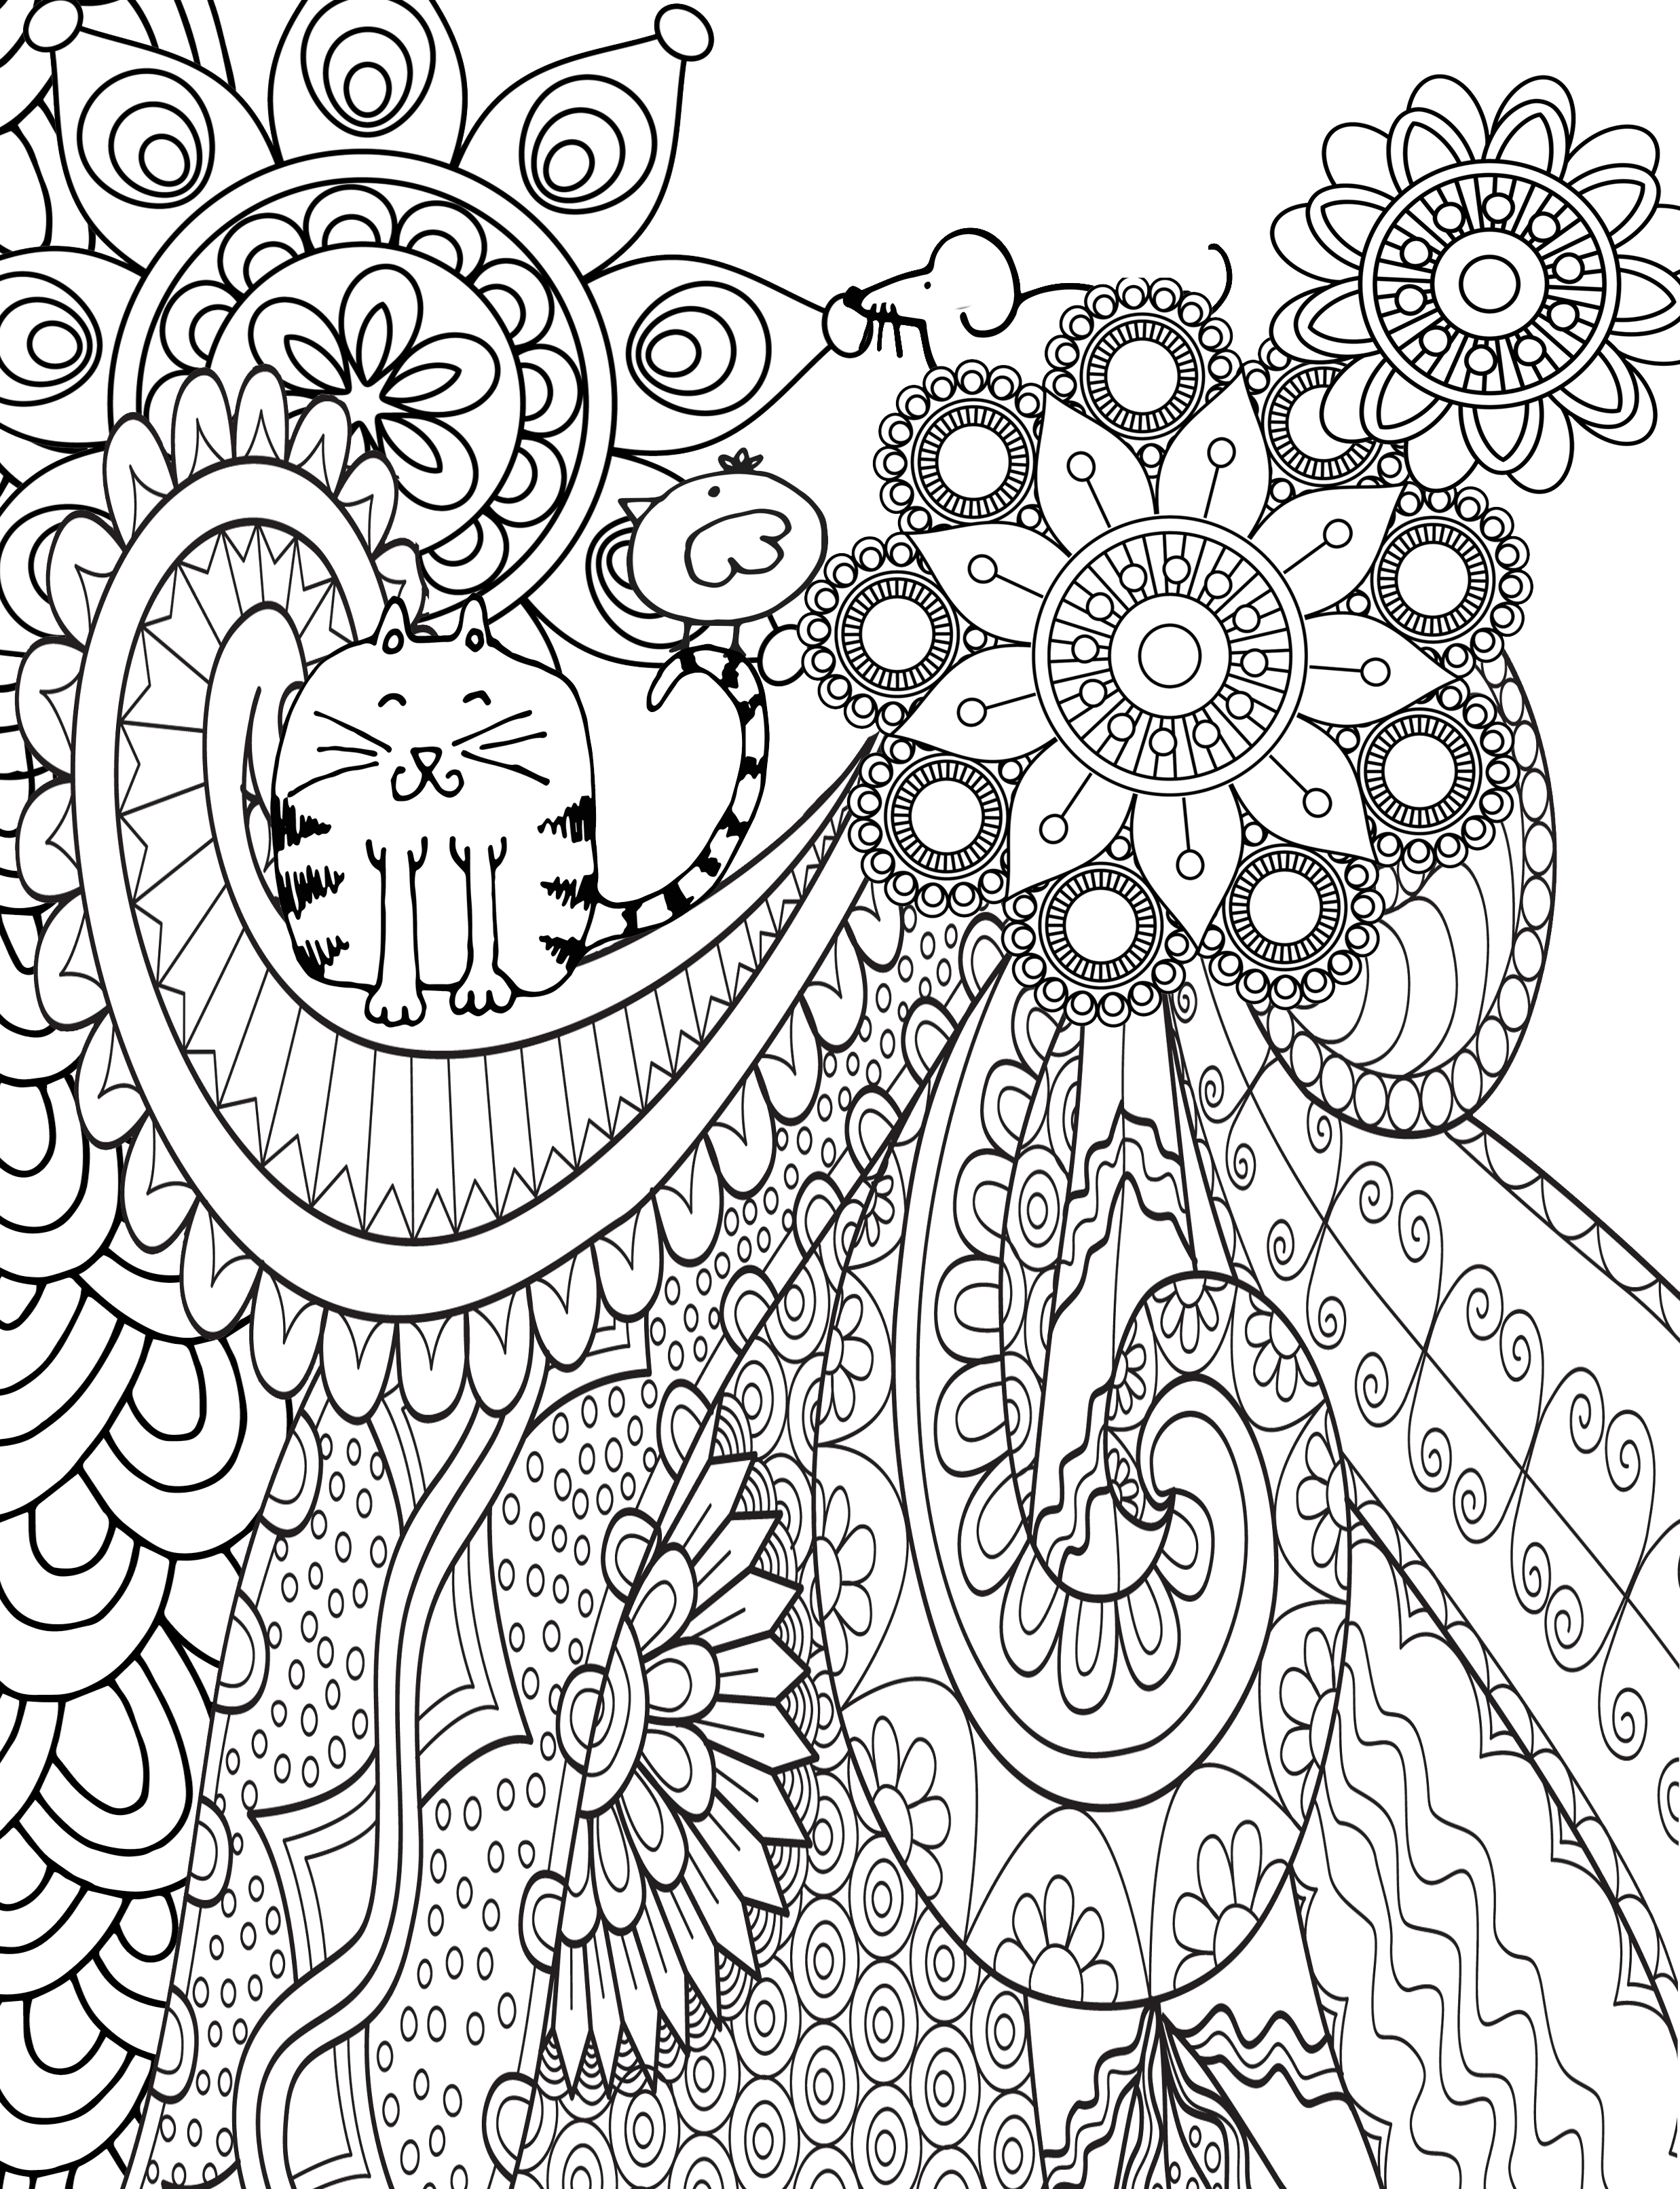 Colorist Heaven Volume 2 Plr Of The Month Club Mandala Coloring Books Coloring Books Coloring Pages Inspirational